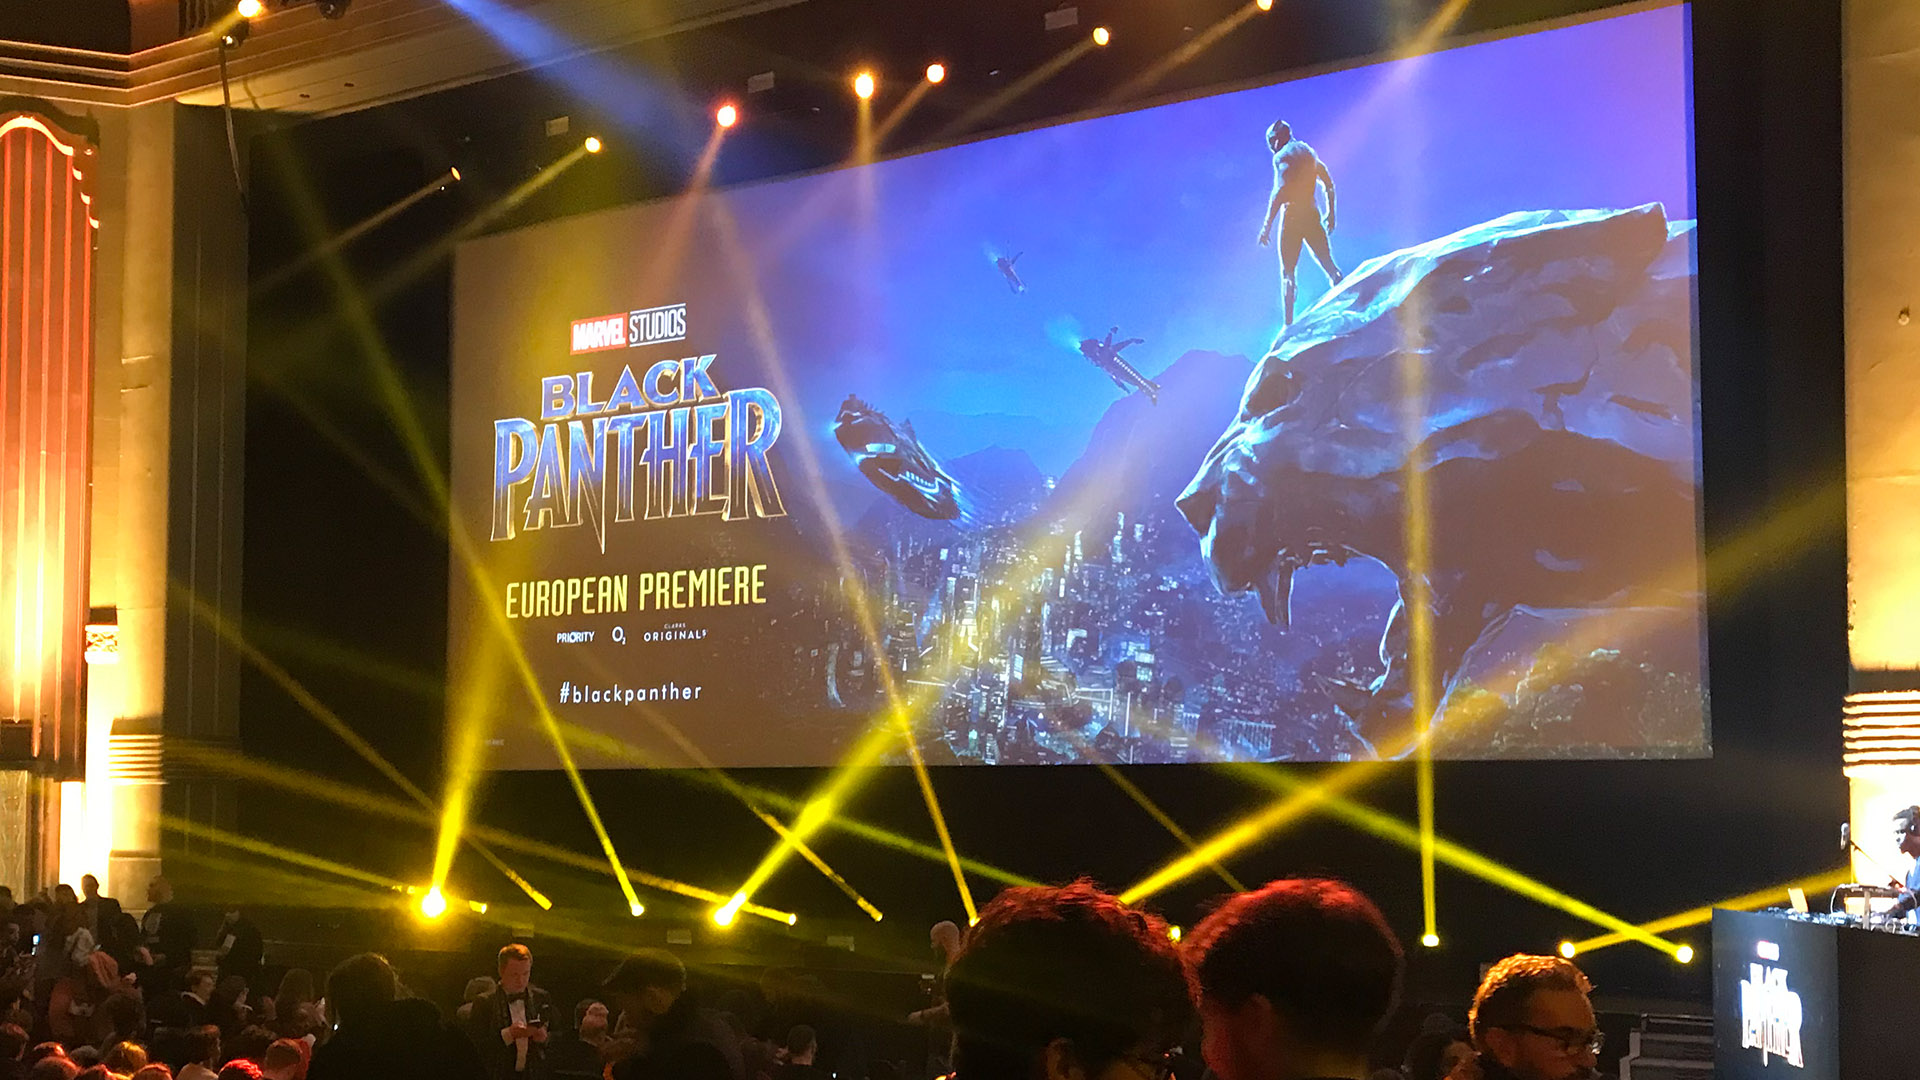 Black Panther European Premiere - Eventim Apollo, Hammersmith, London